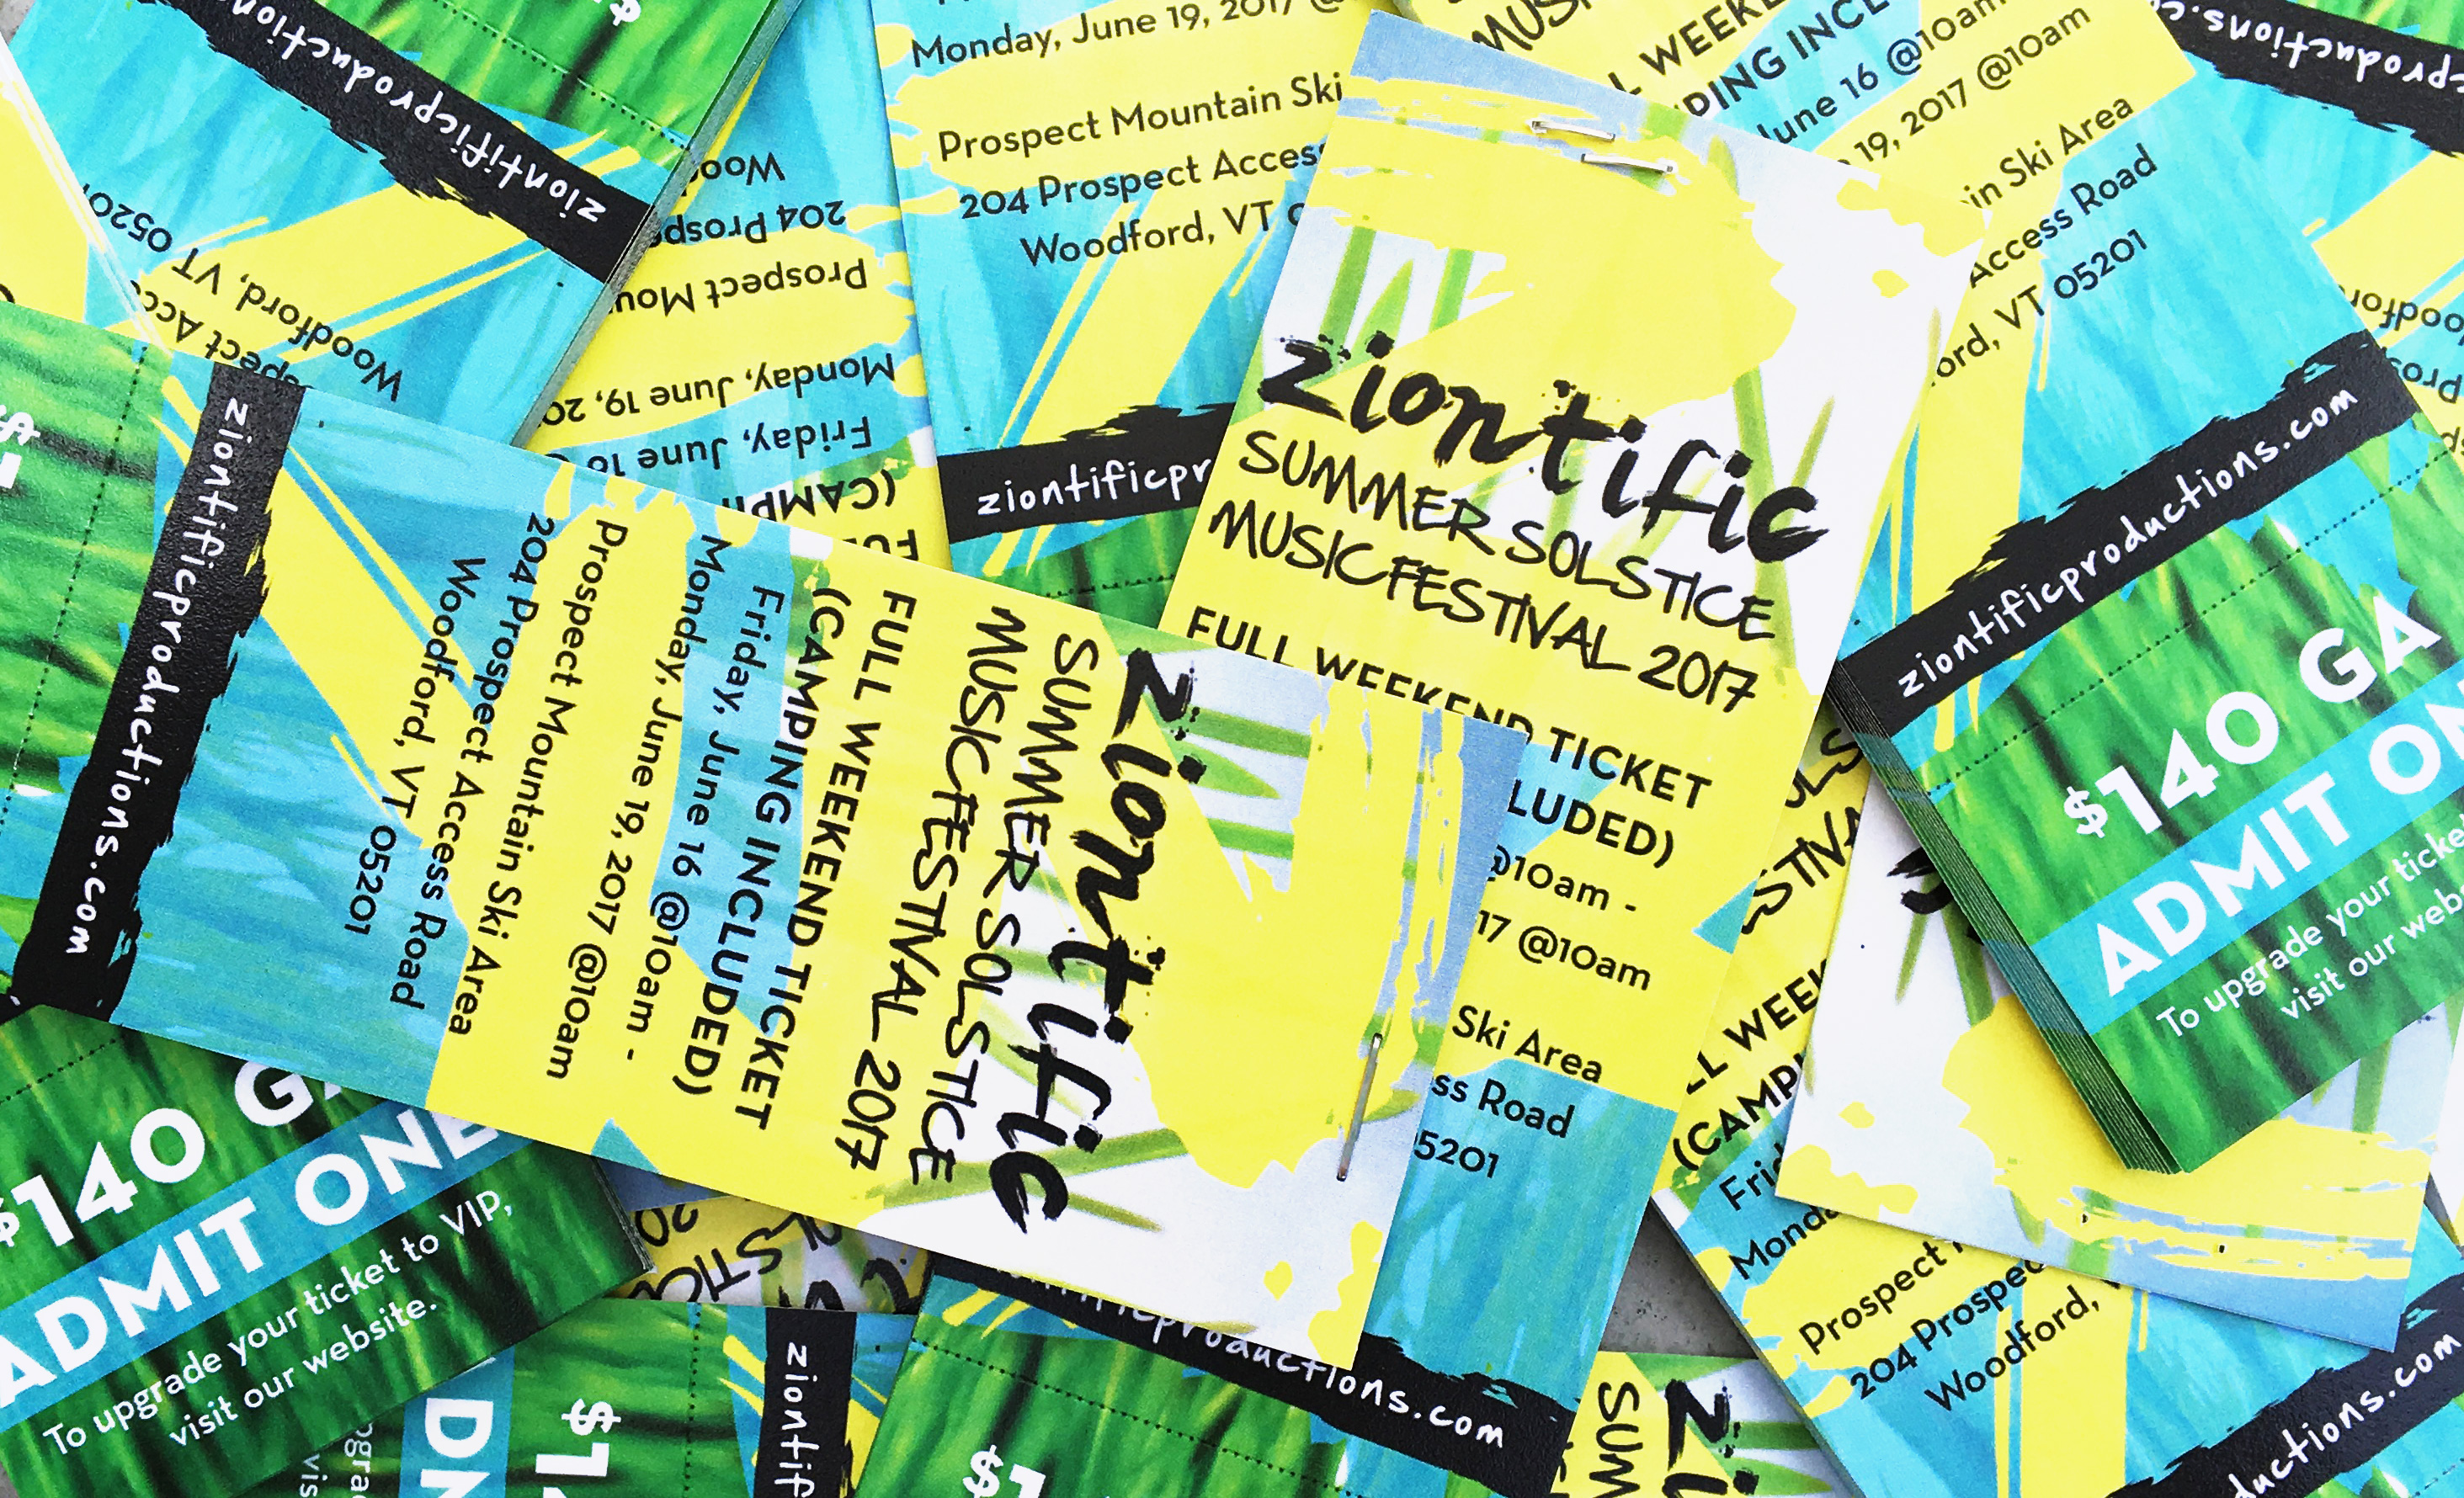 Ziontific Summer Solstice Music Festival Tickets